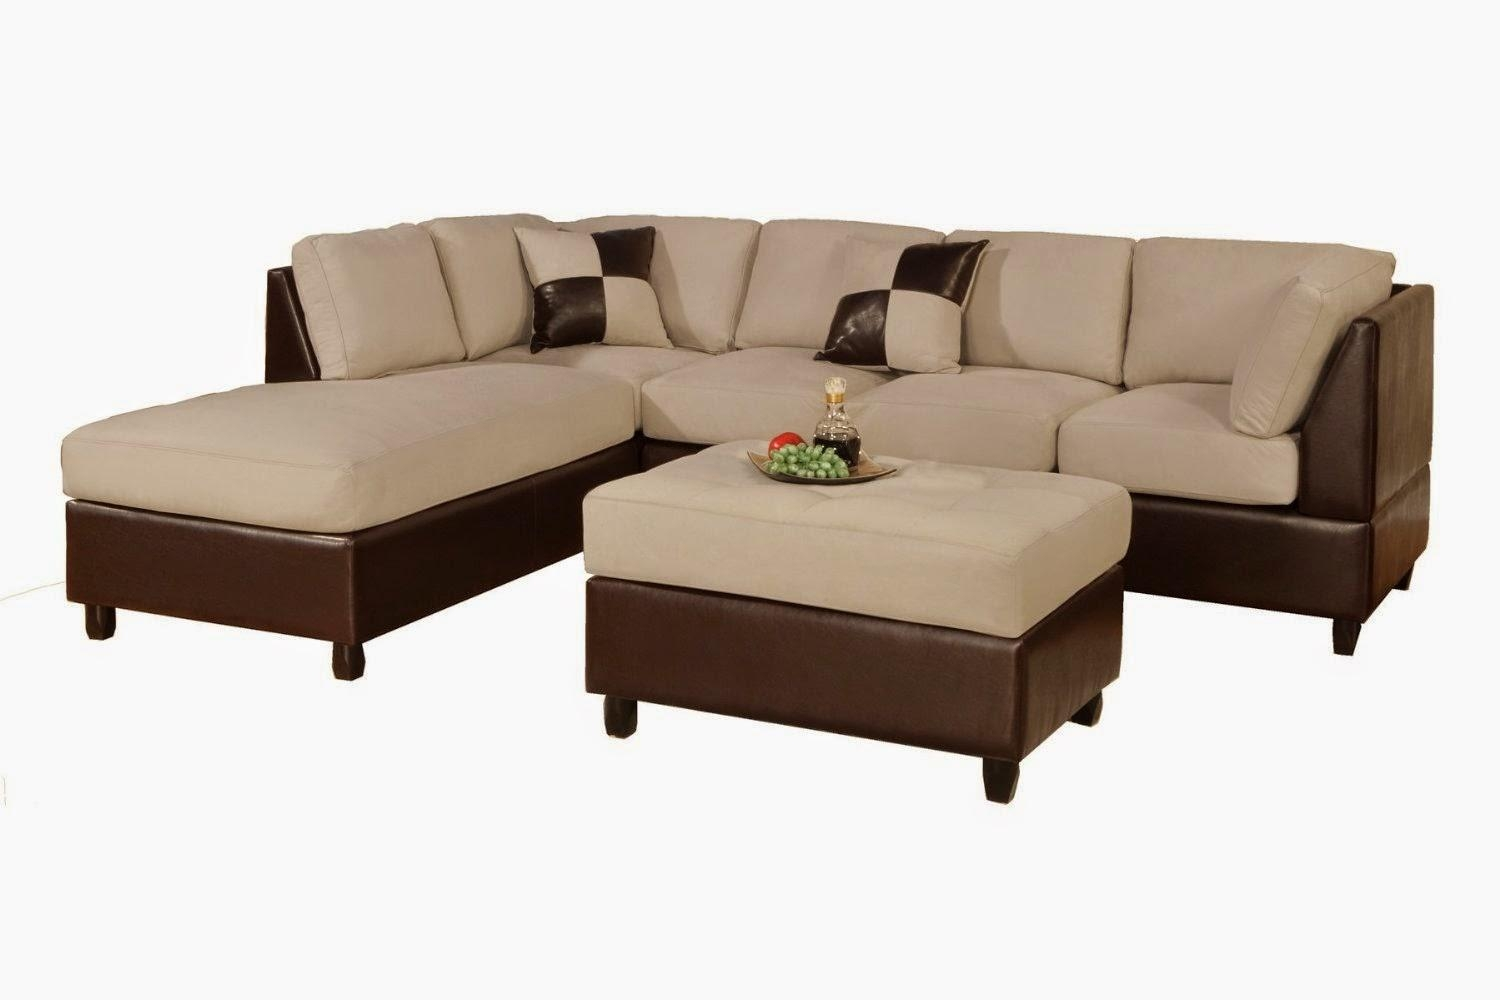 L Shaped Sectional Couch (Image 7 of 20)